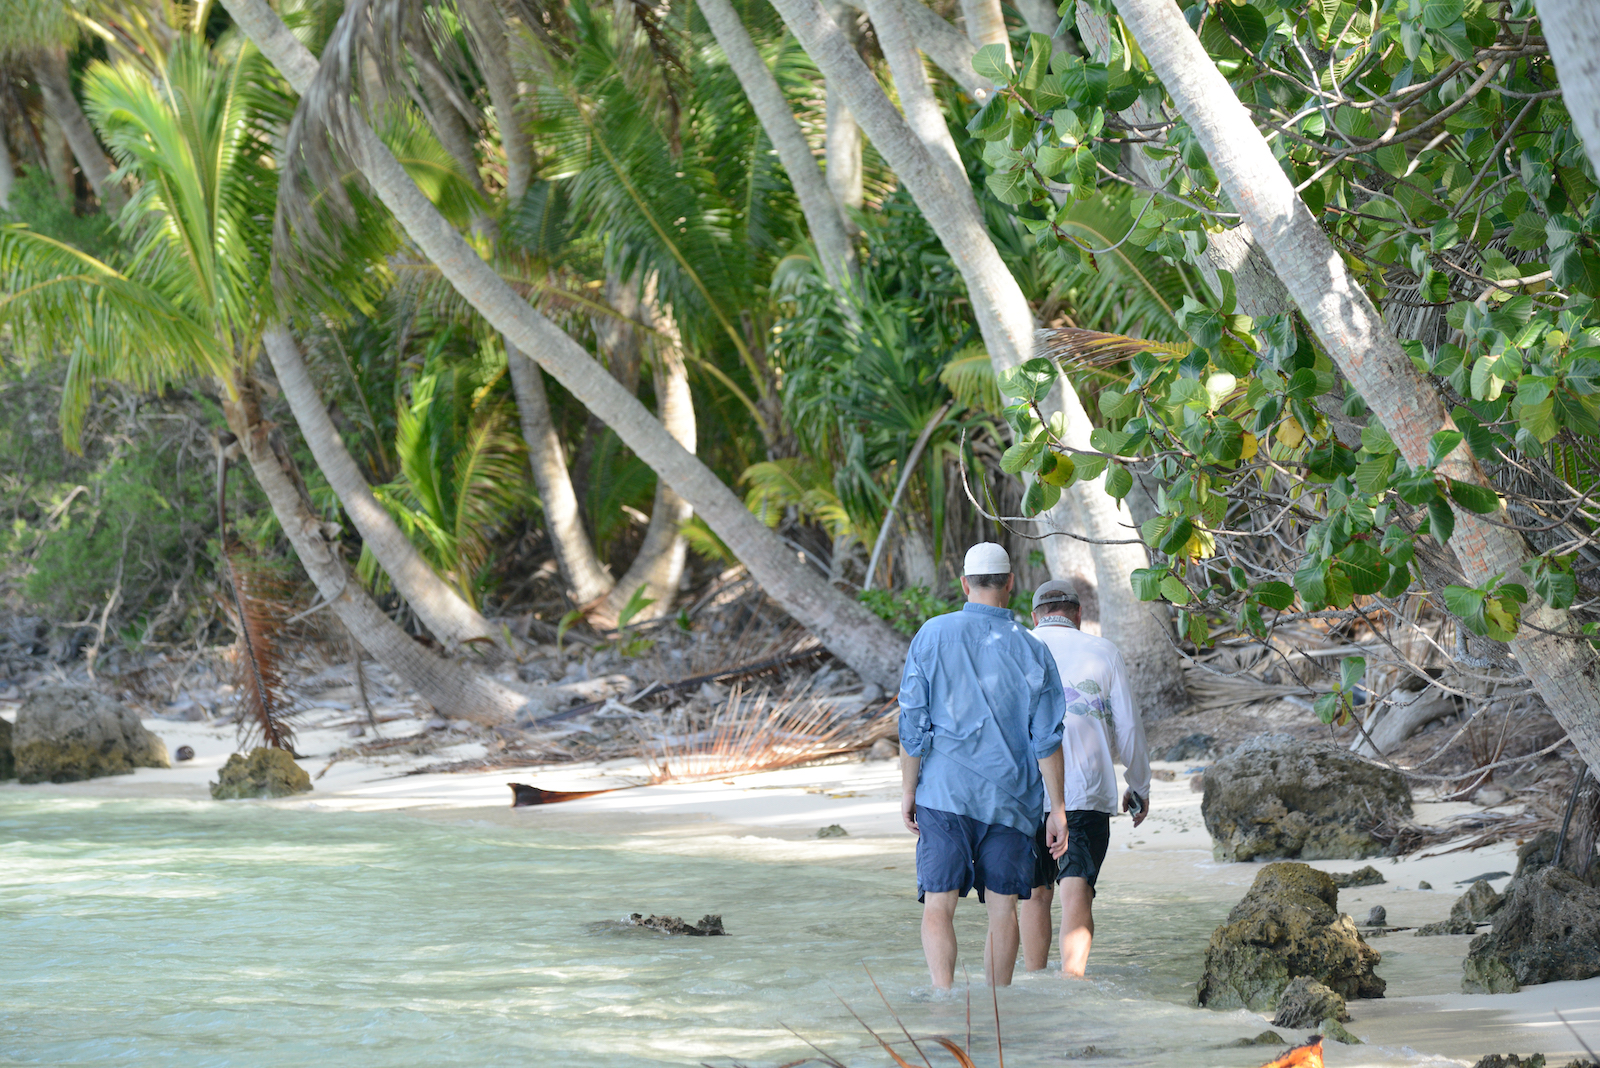 Brando guests tour the atoll with Tetiaroa Society guides